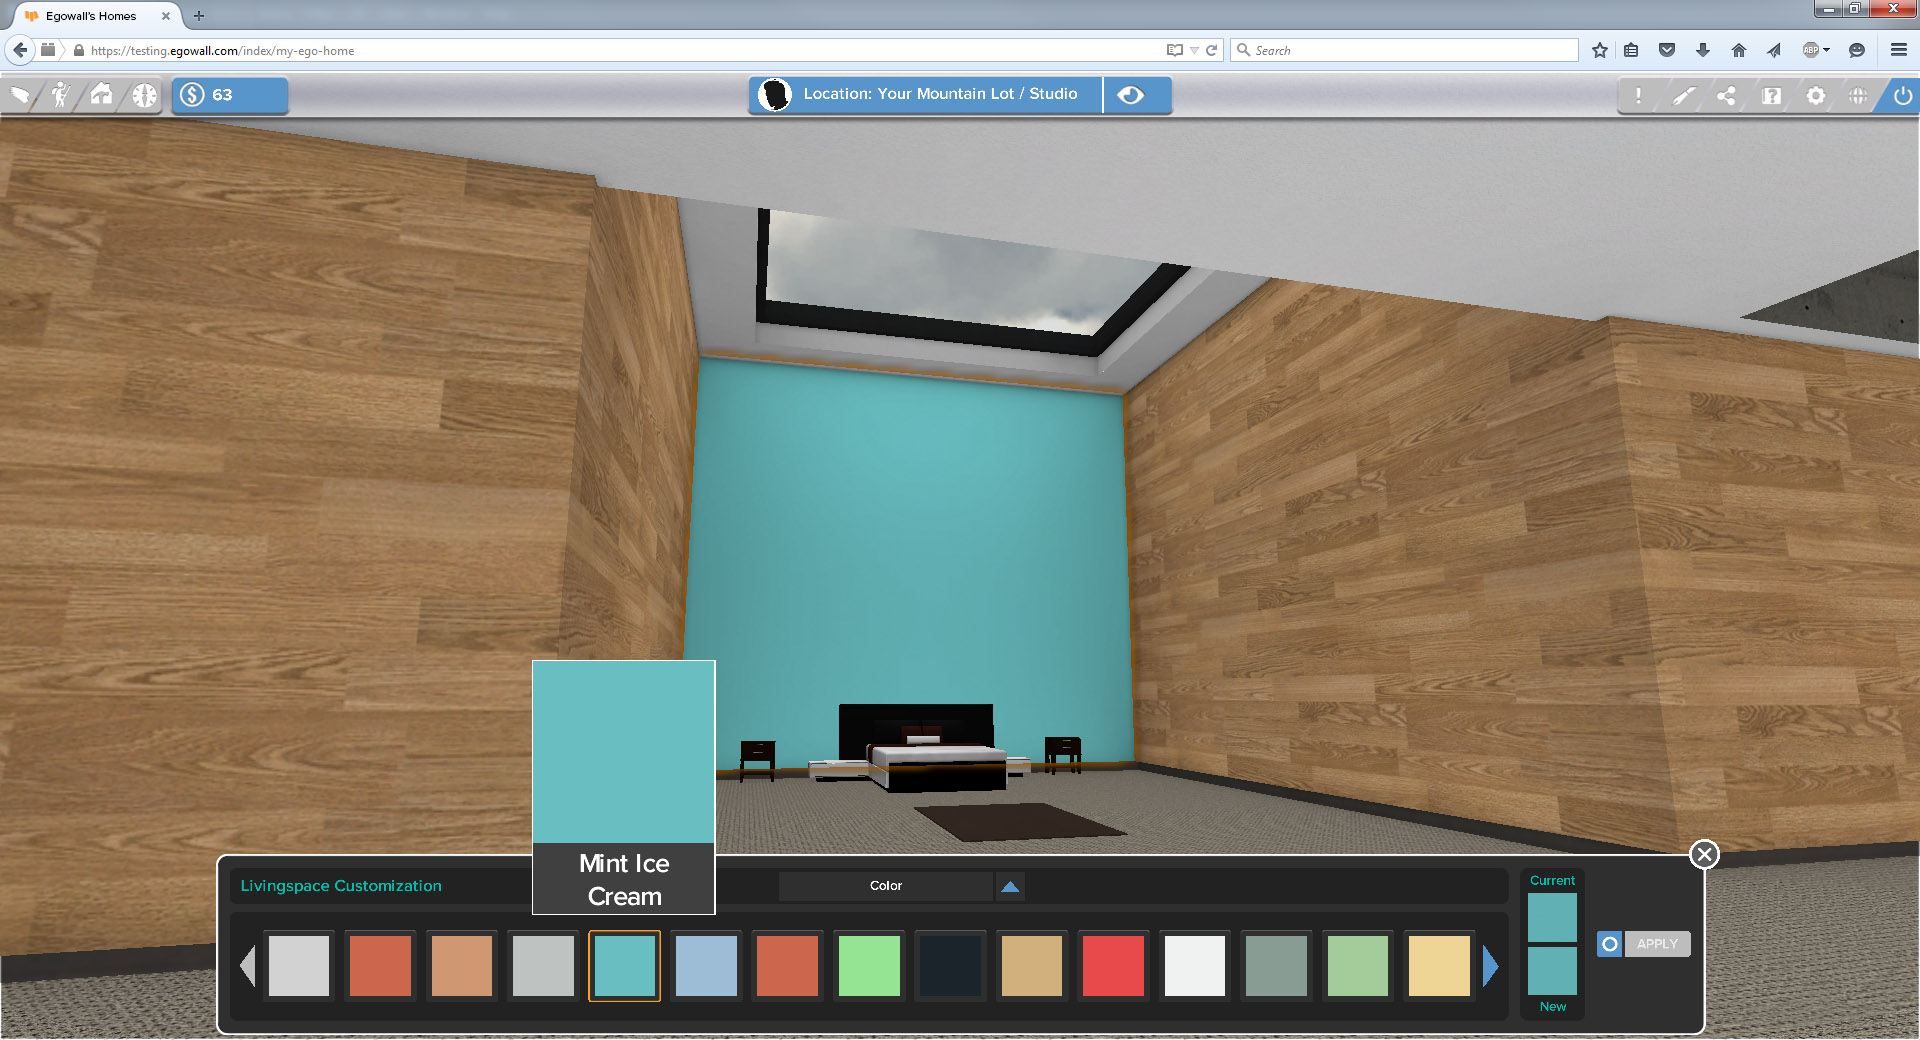 To customize a space, click customize in the upper left corner, then click on a wall or other surface.